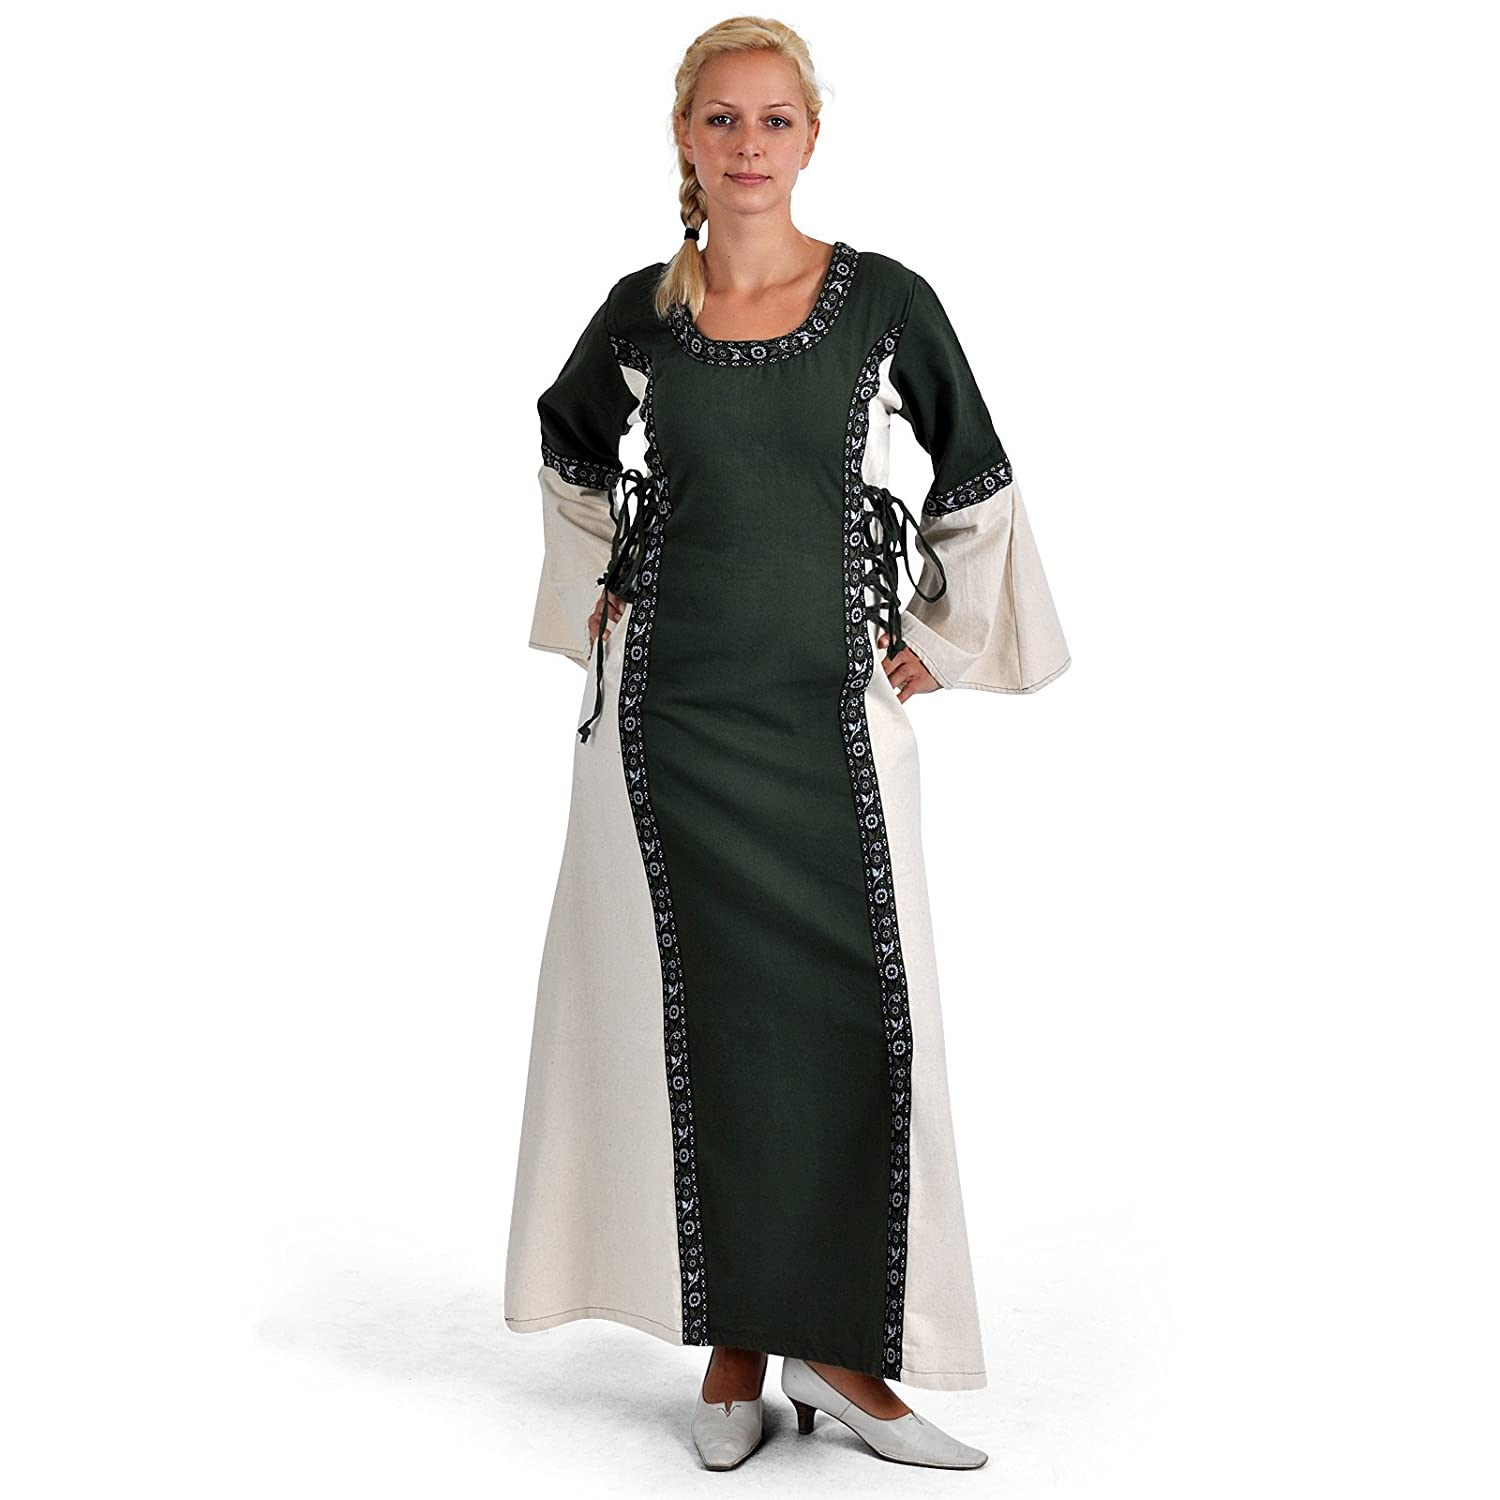 Medieval Dress Tyra - Side & Back Lacing - For LARP Events or Cons - Green/Natural